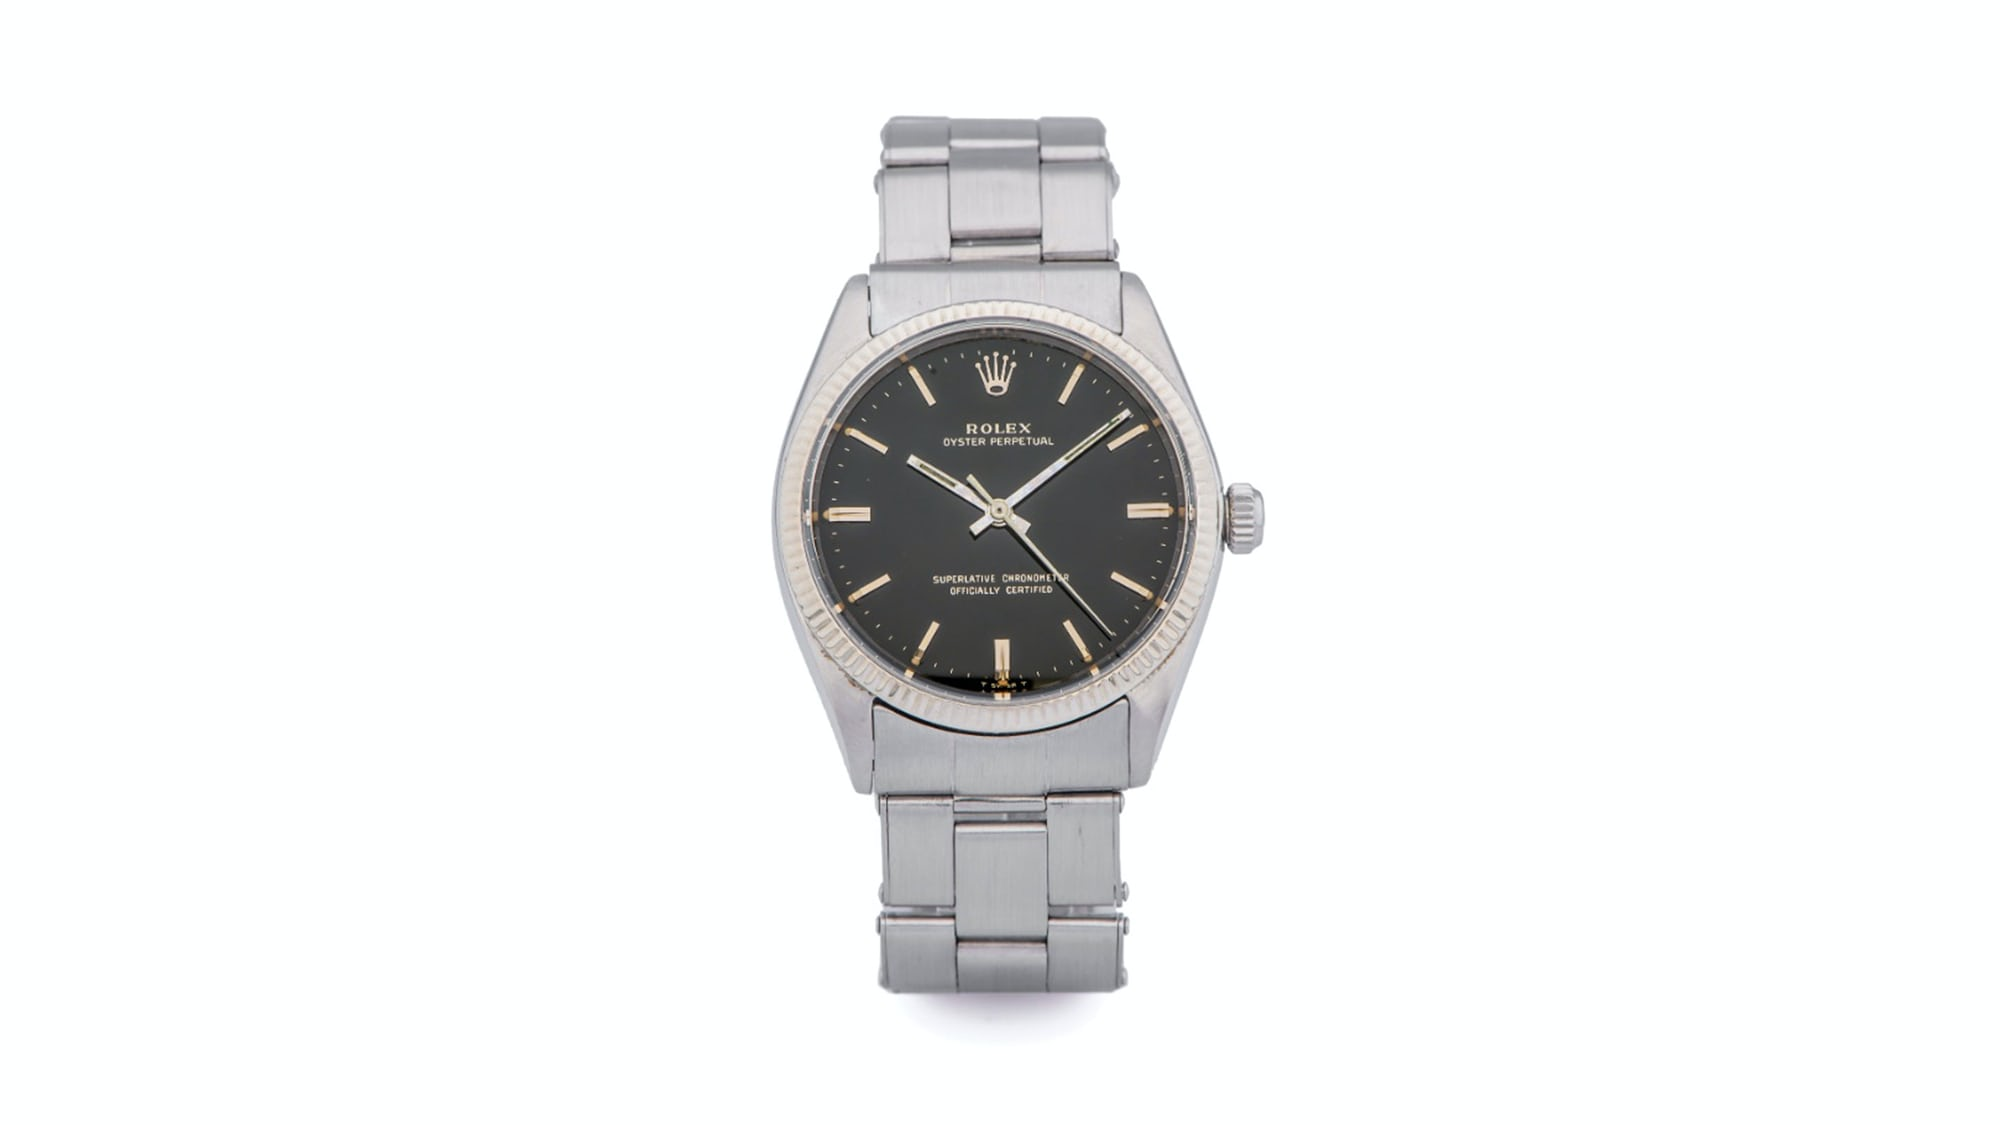 Bring a Loupe: A 1960s Rolex Oyster Perpetual Ref. 1002, An Abercrombie & Fitch Solunar, And An Omega Chronostop